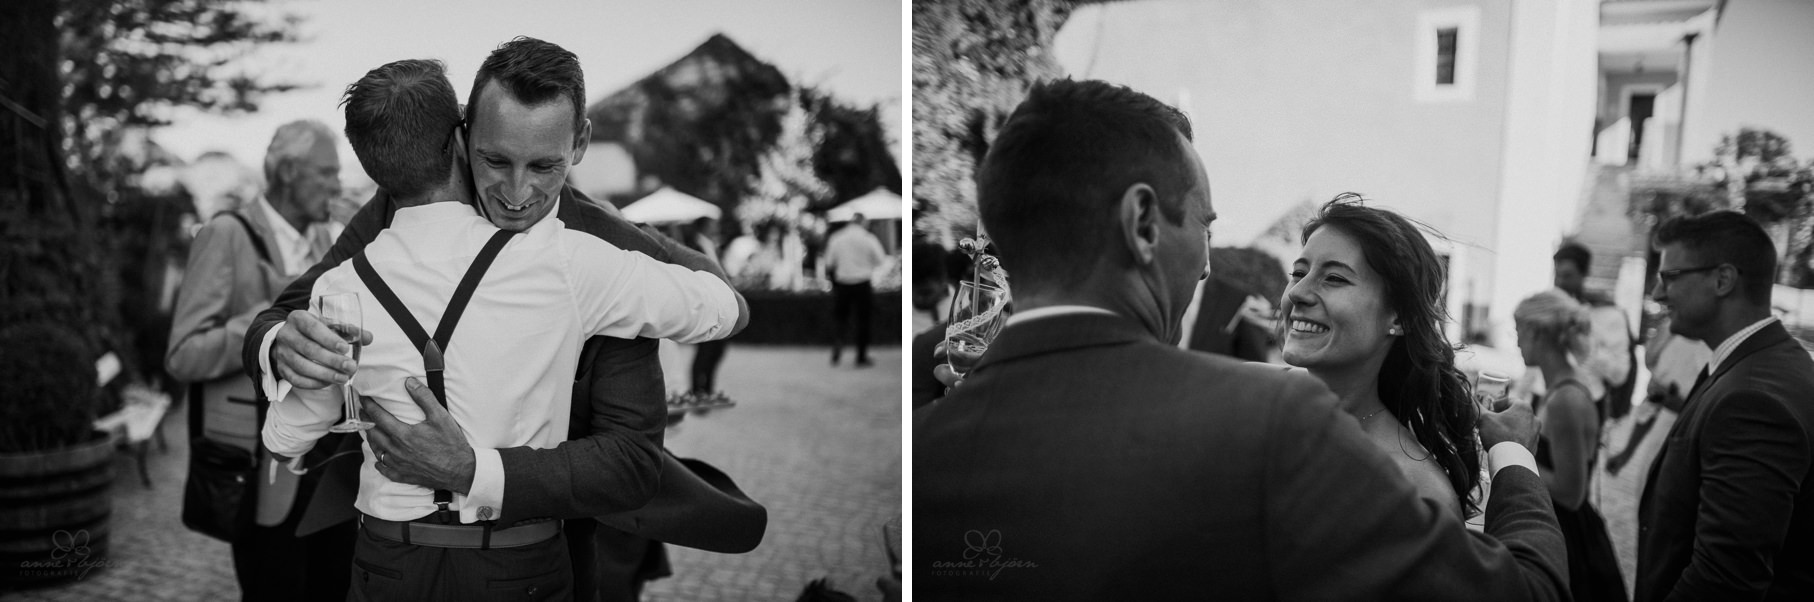 0067 anna olli portugal destination wedding d76 4739 - Hochzeit in Portugal - Quinta de Santa´Ana